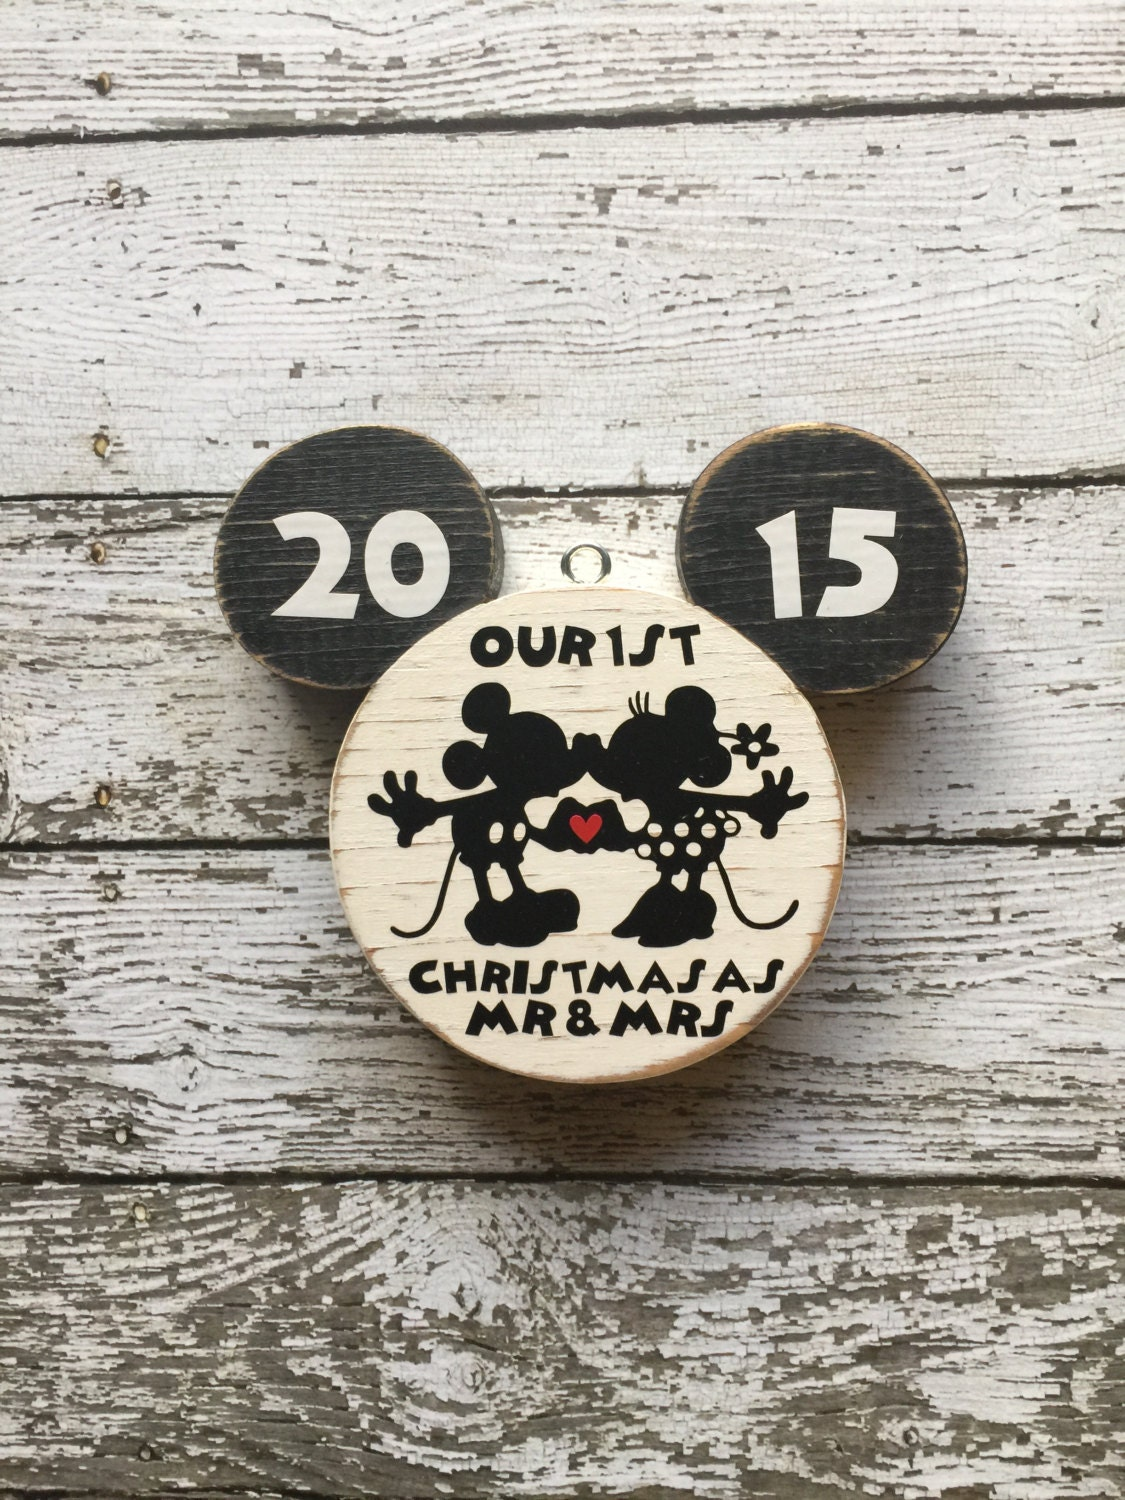 Will you marry me christmas ornament - Disney Ornament First Christmas Ornament Married Just Married Mr And Mrs Mickey